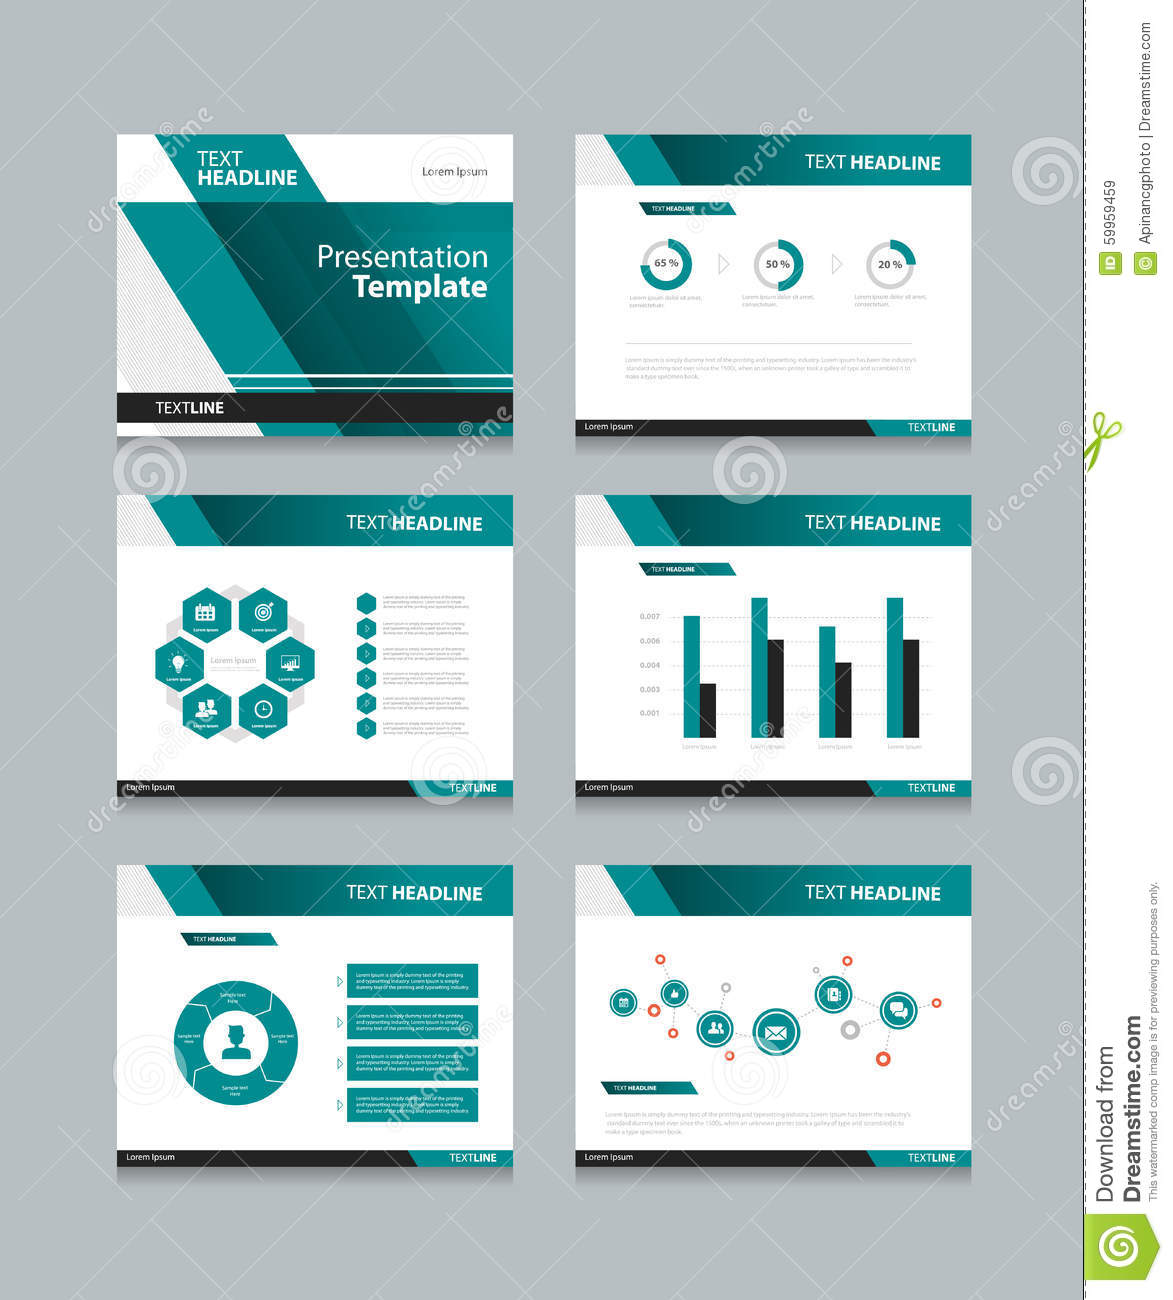 Business presentation and powerpoint template slides background business presentation and powerpoint template slides background design cheaphphosting Choice Image